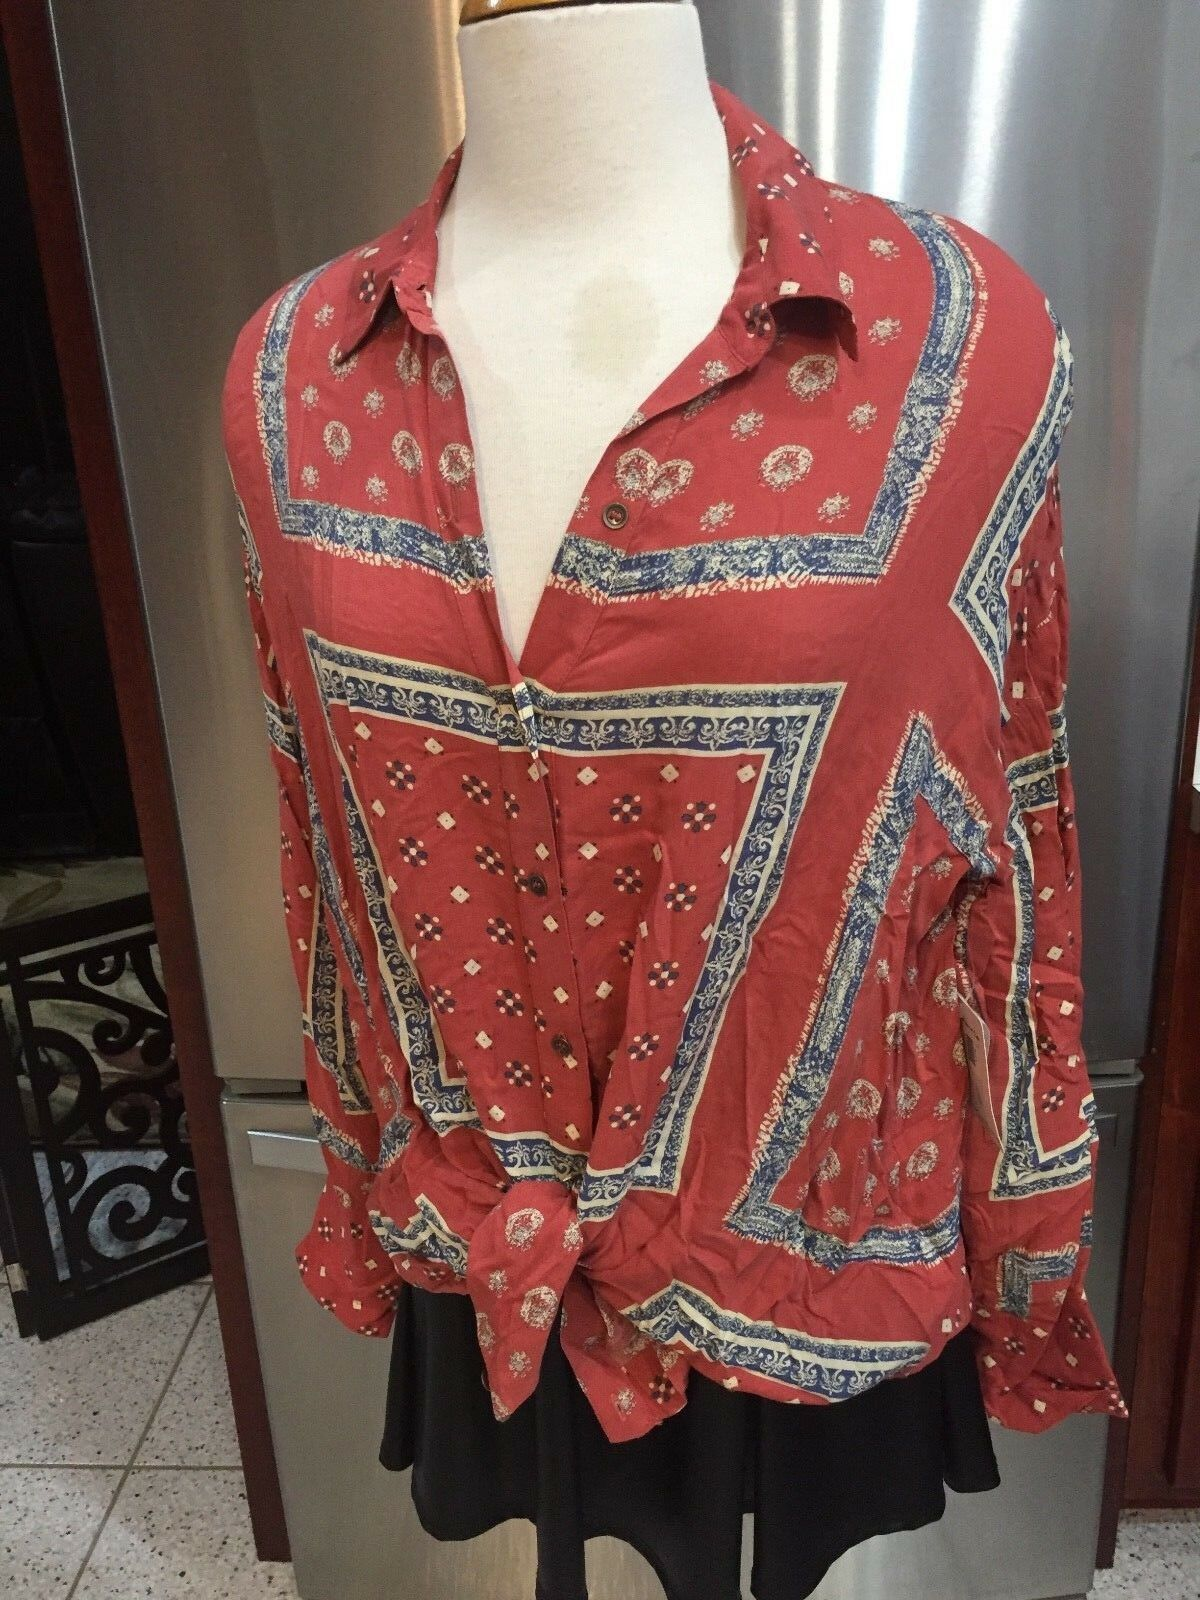 NEW FREE PEOPLE SZ XS APRICOT BUTTON UP LONG SLEEVE TOP BLOUSE COLLAR